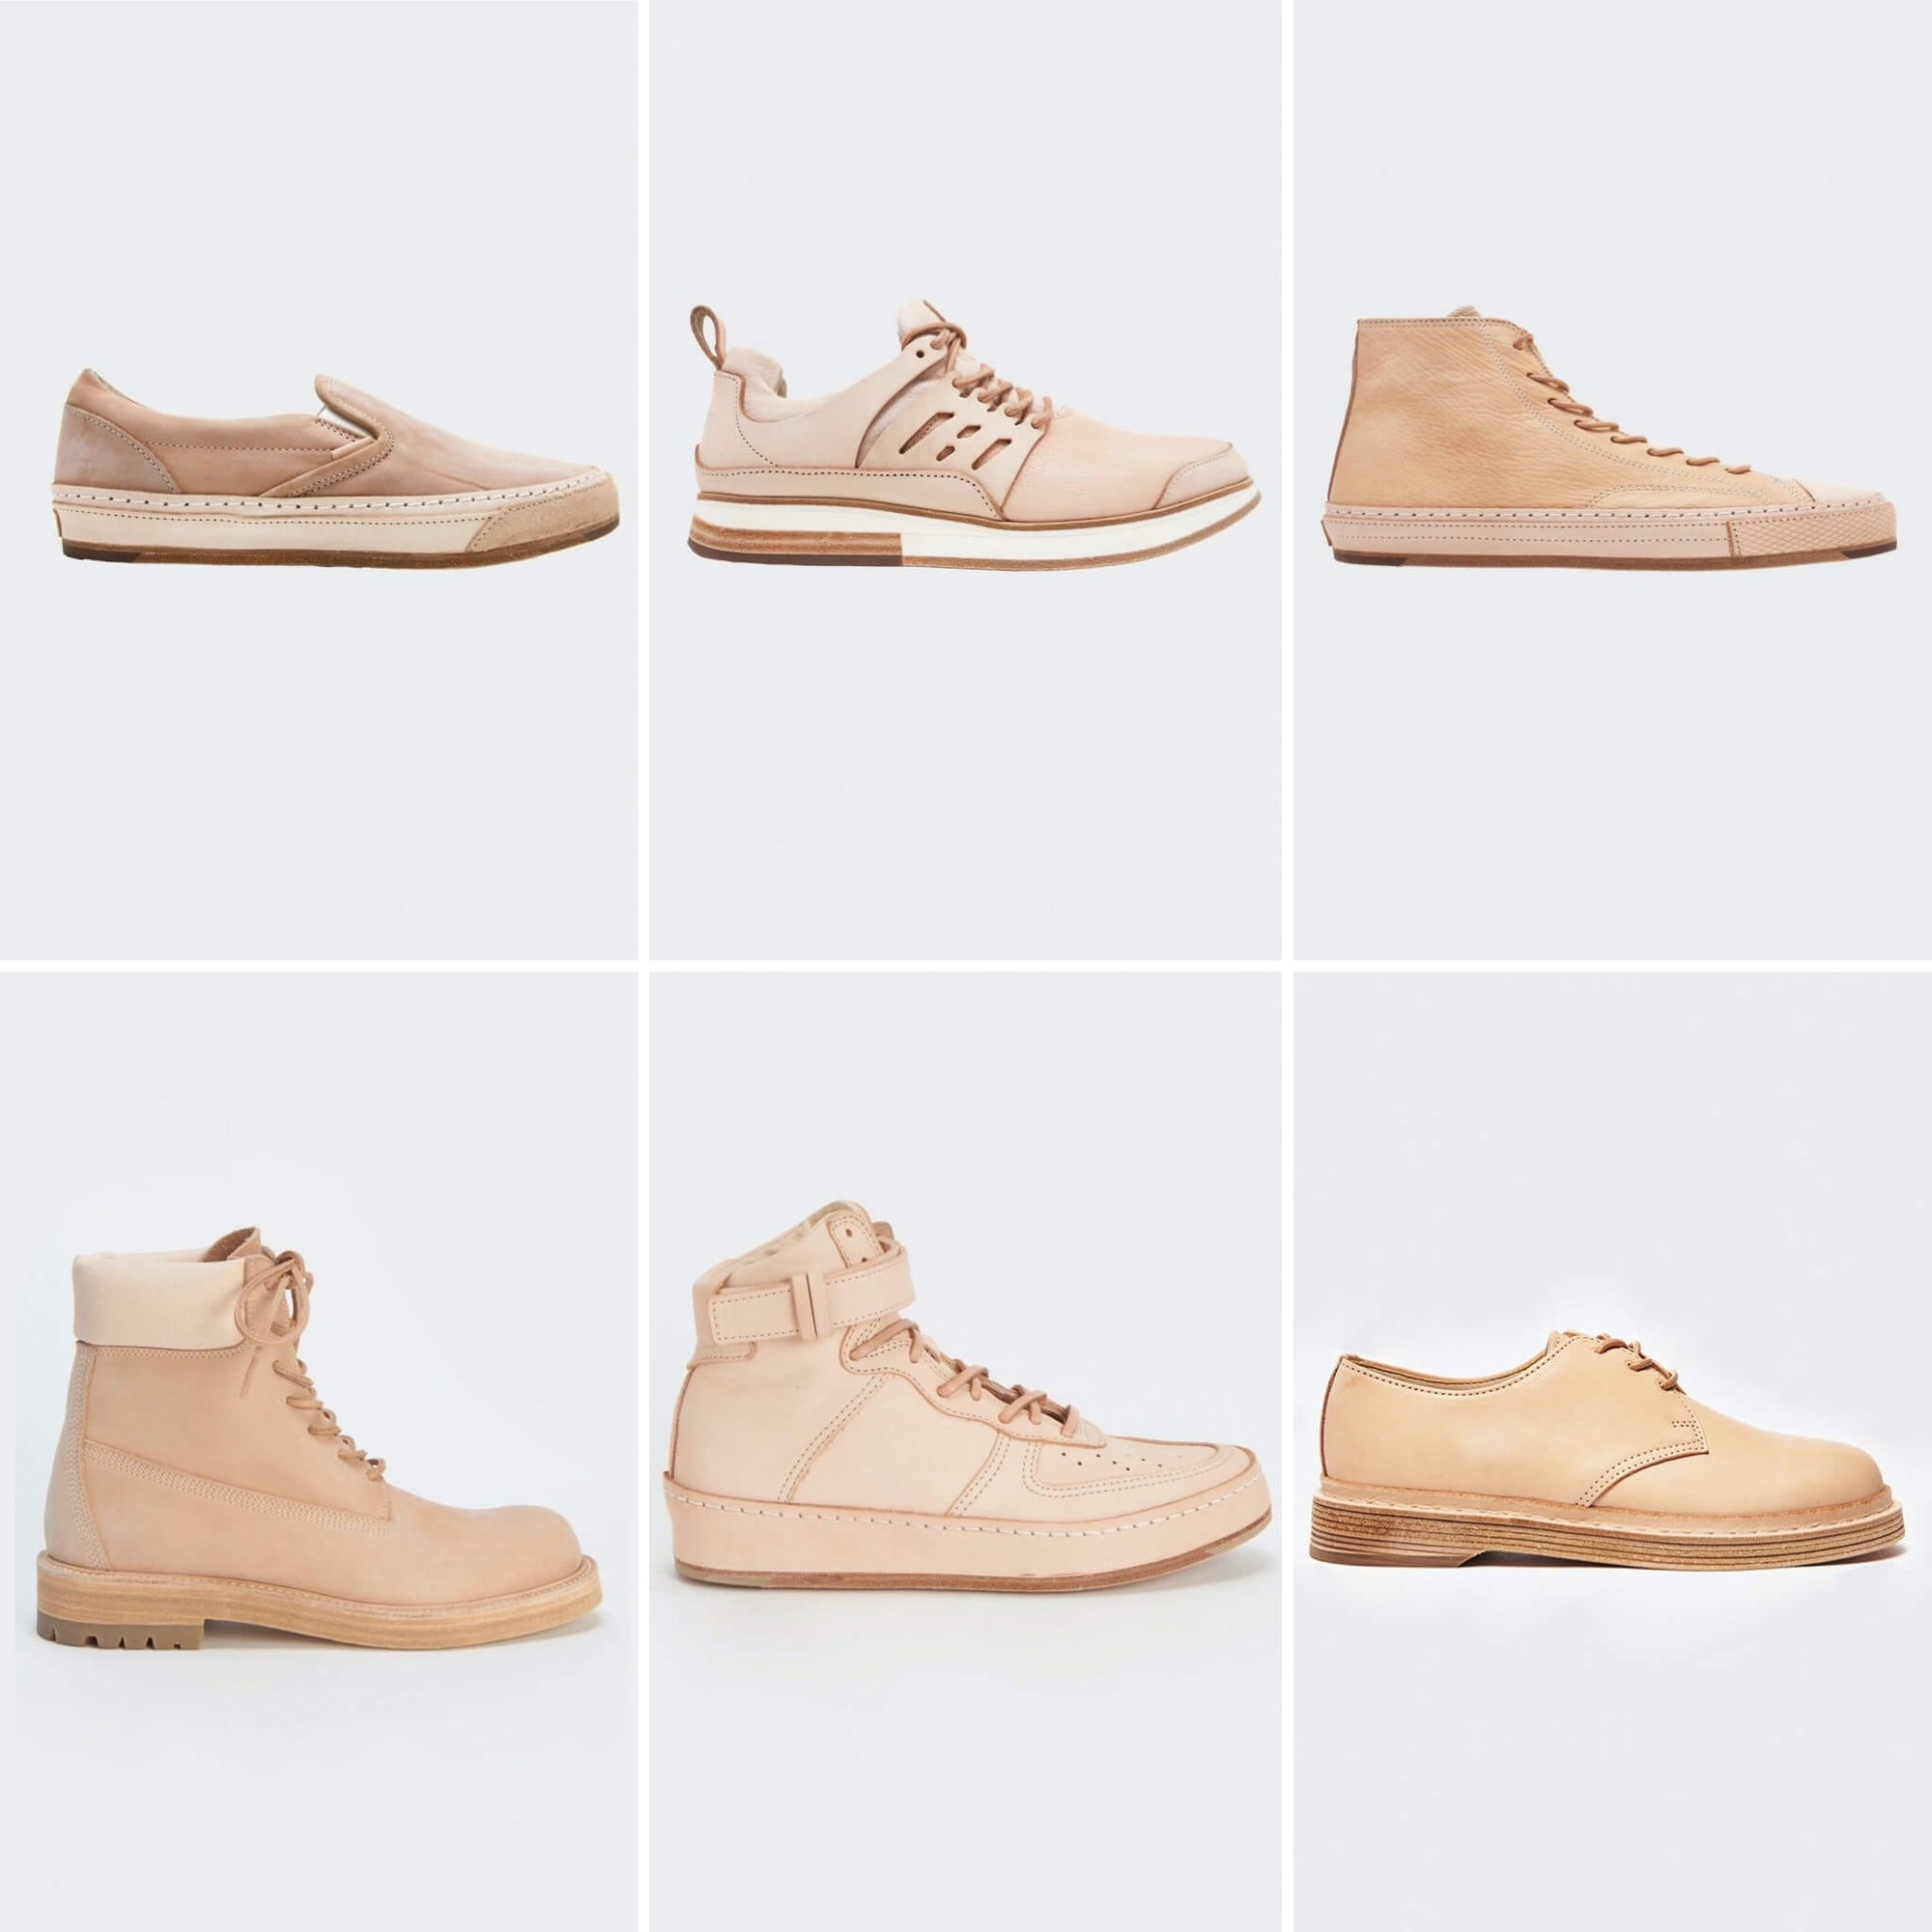 hender scheme's mip collection